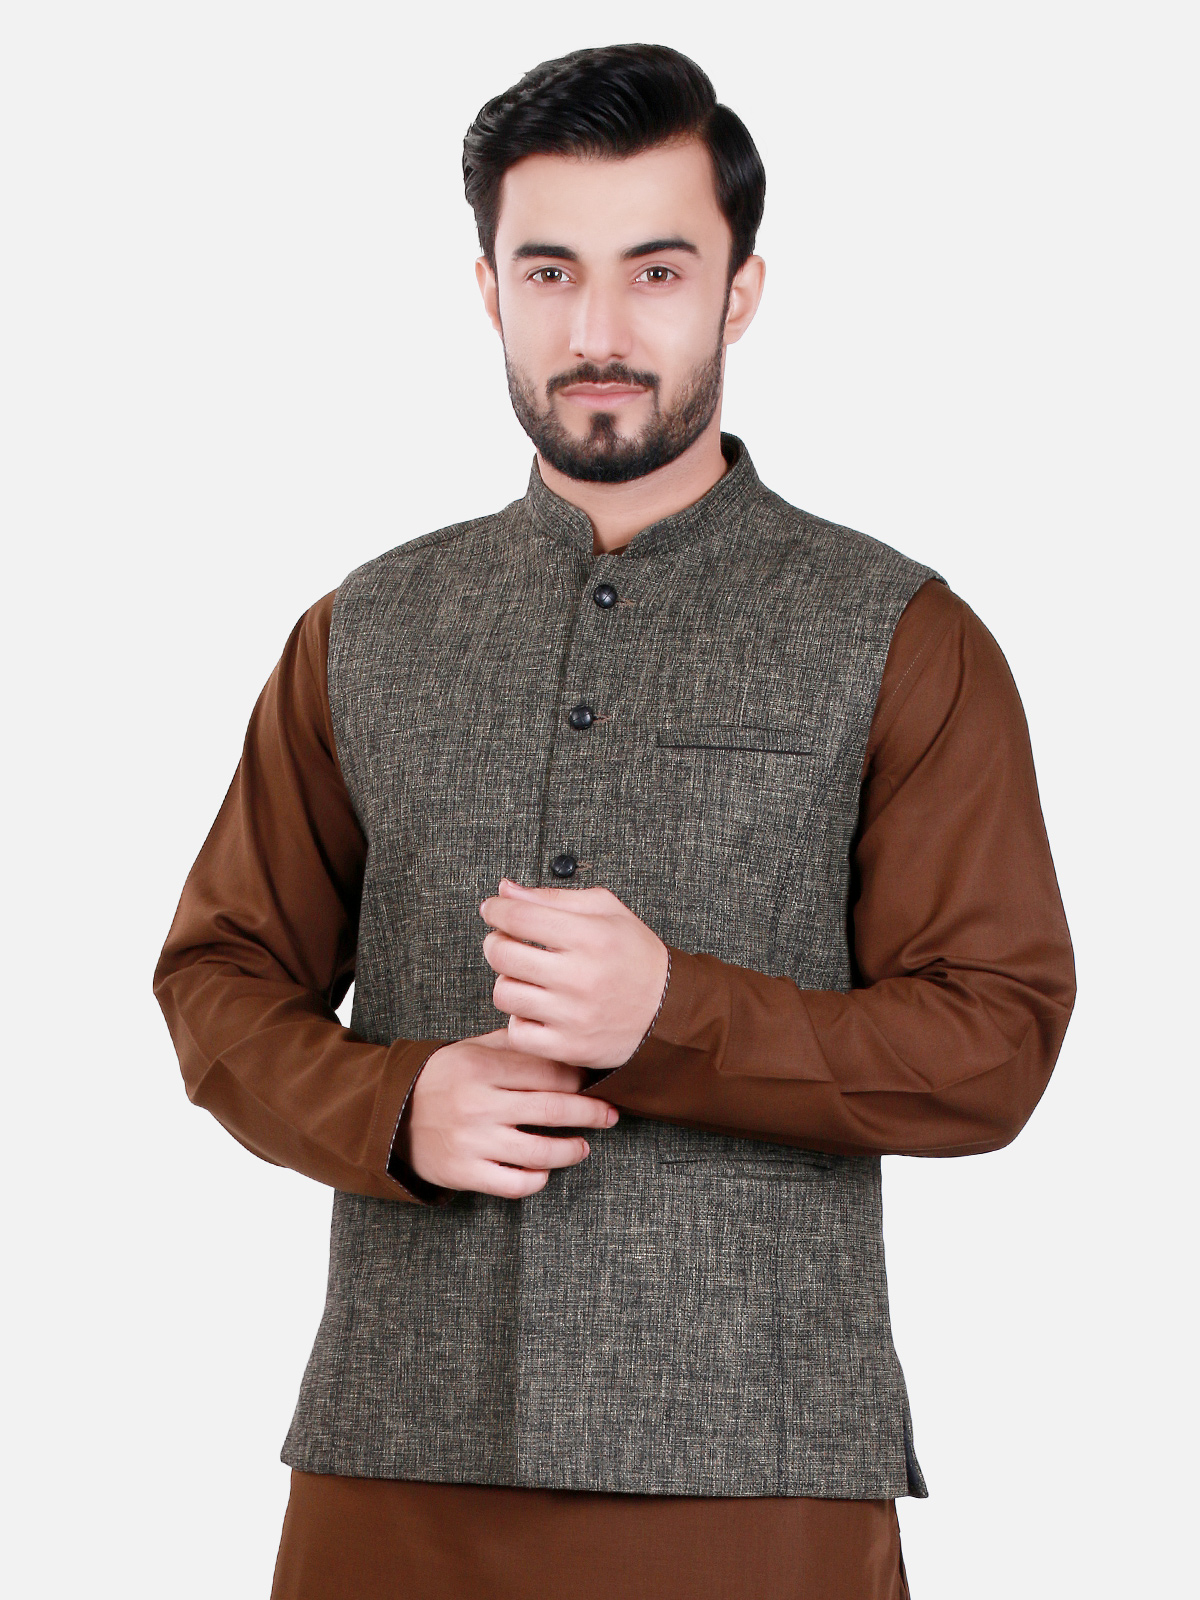 Trending Waist Coat Designs 2018 For Men Men S Wasket